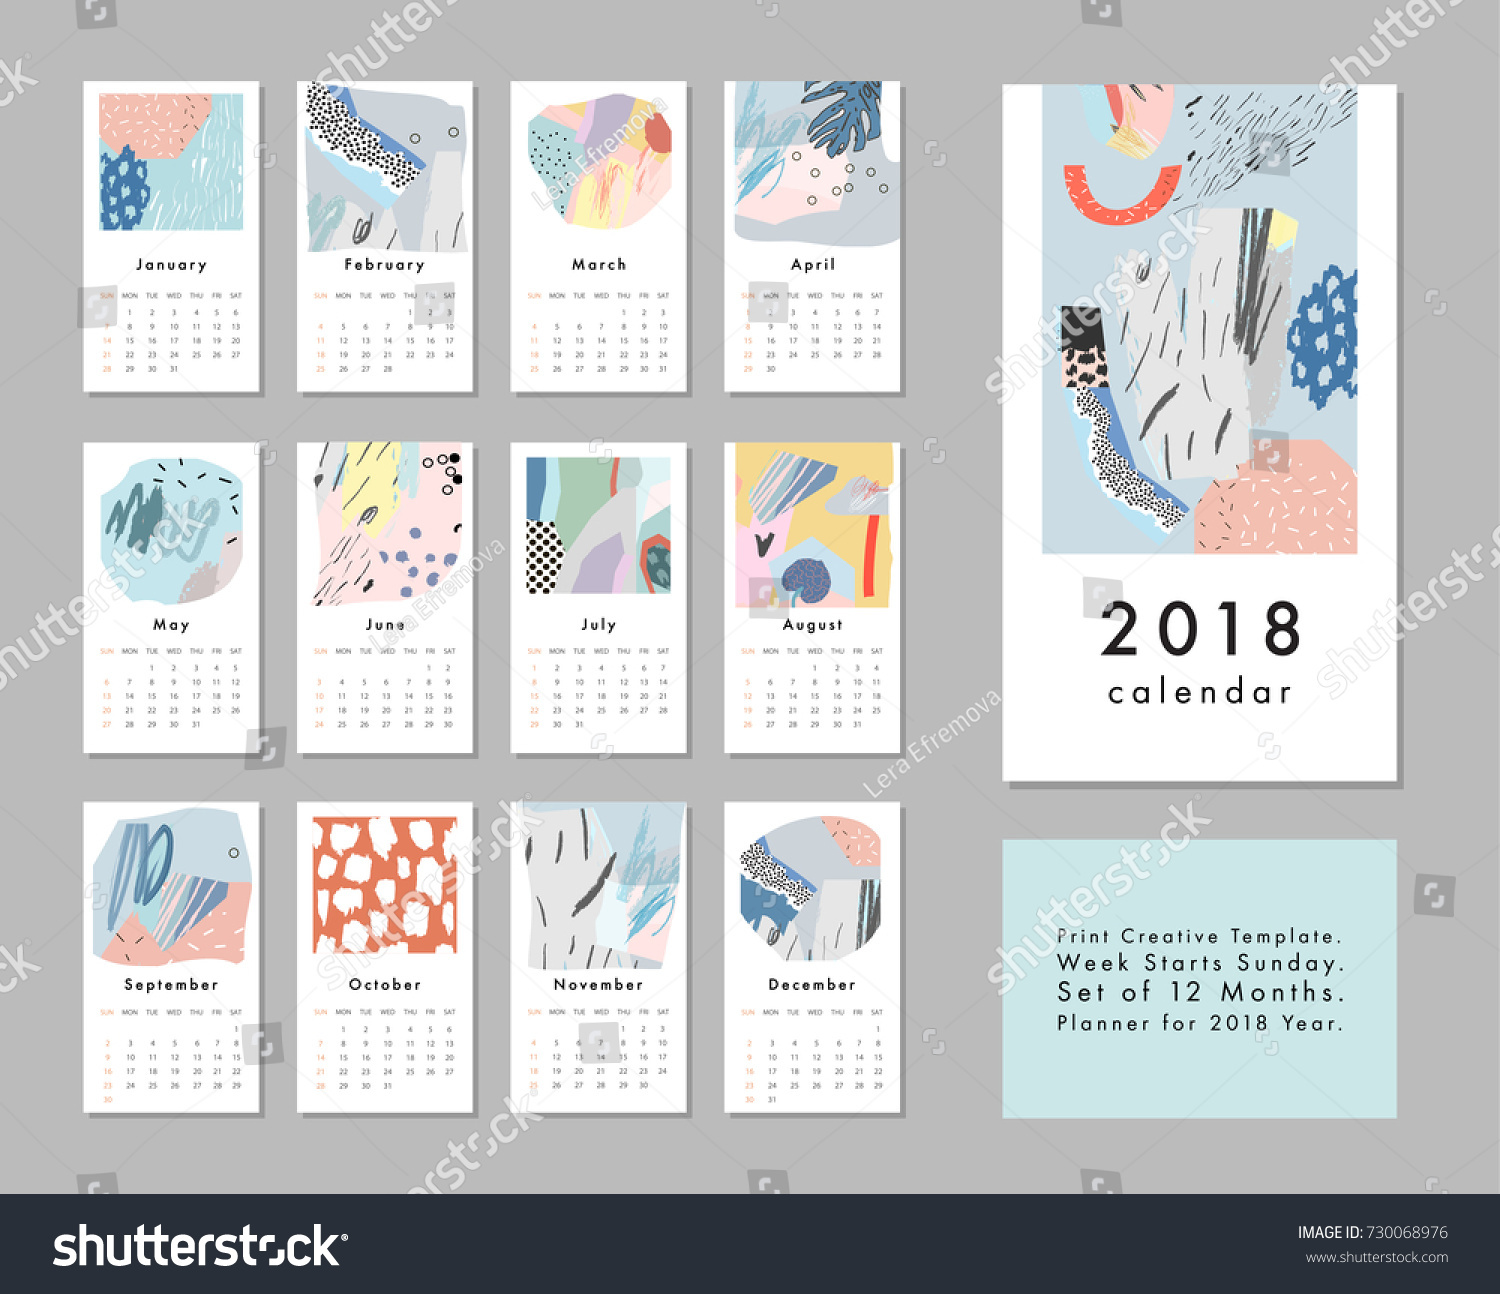 Calendar Abstract Art : Calendar printable creative template abstract stock